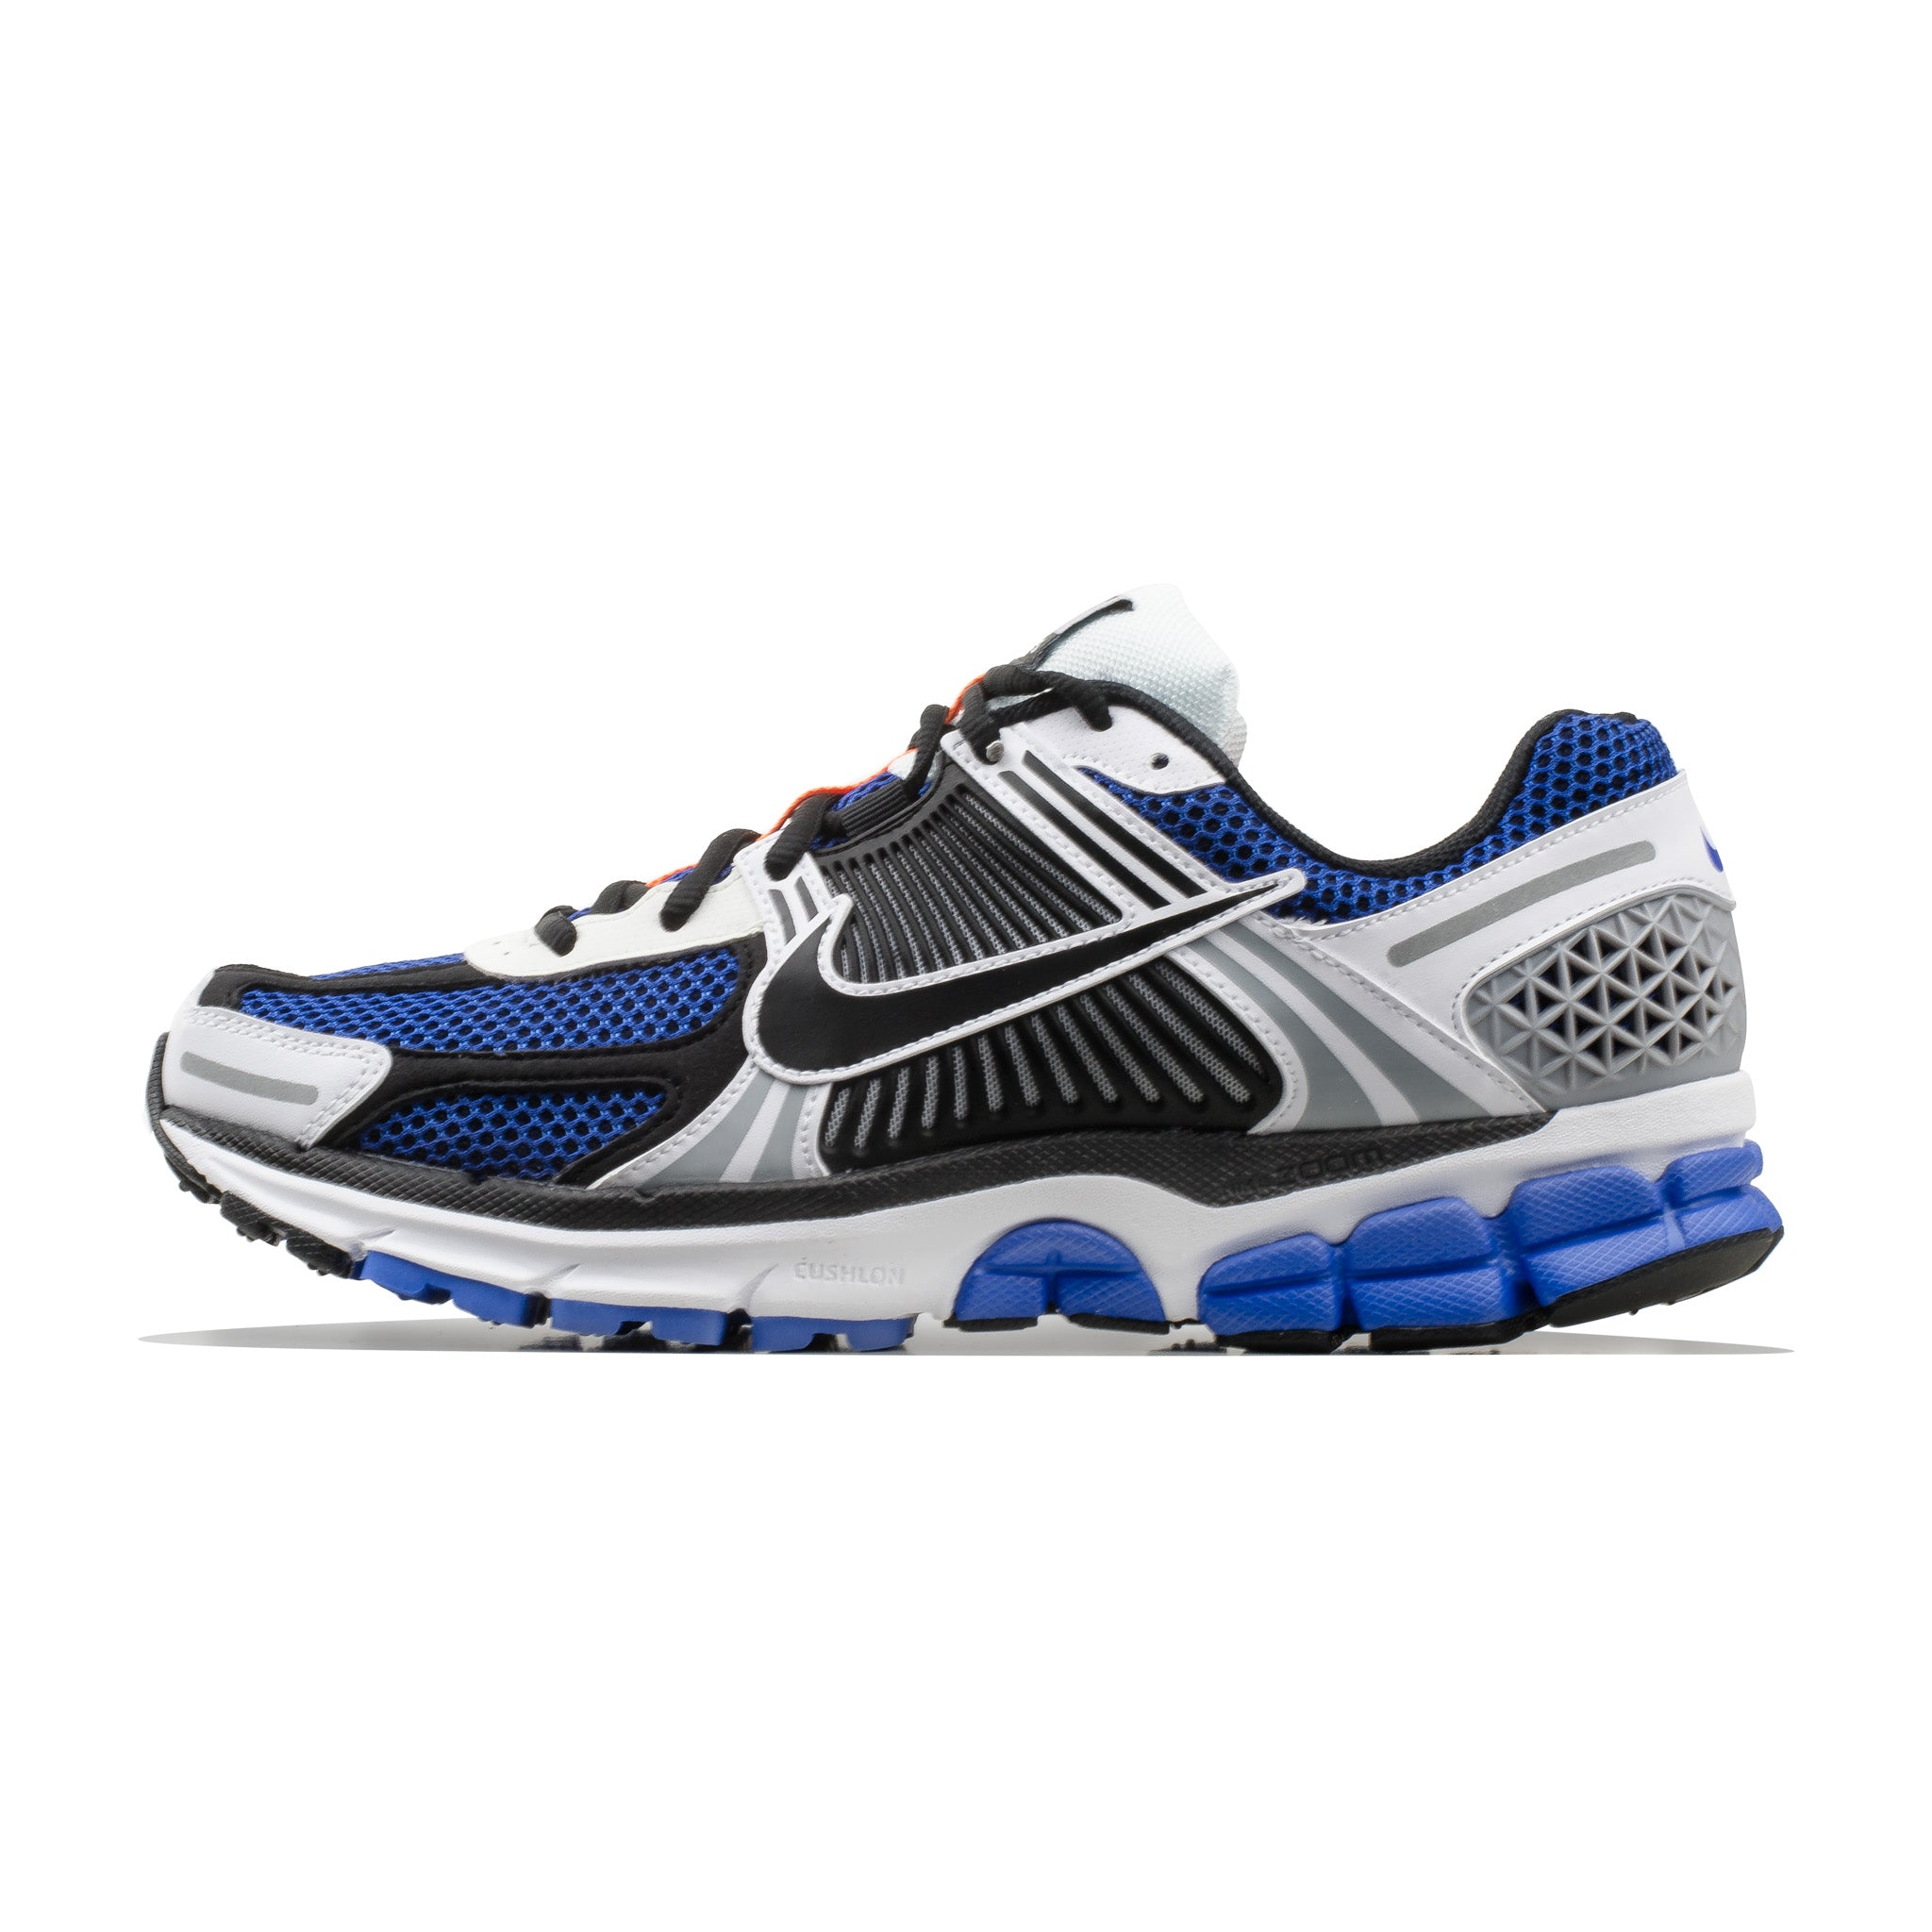 new products 01ead 5a4bb Nike Zoom Vomero 5 SP CI1694-100 White Blue